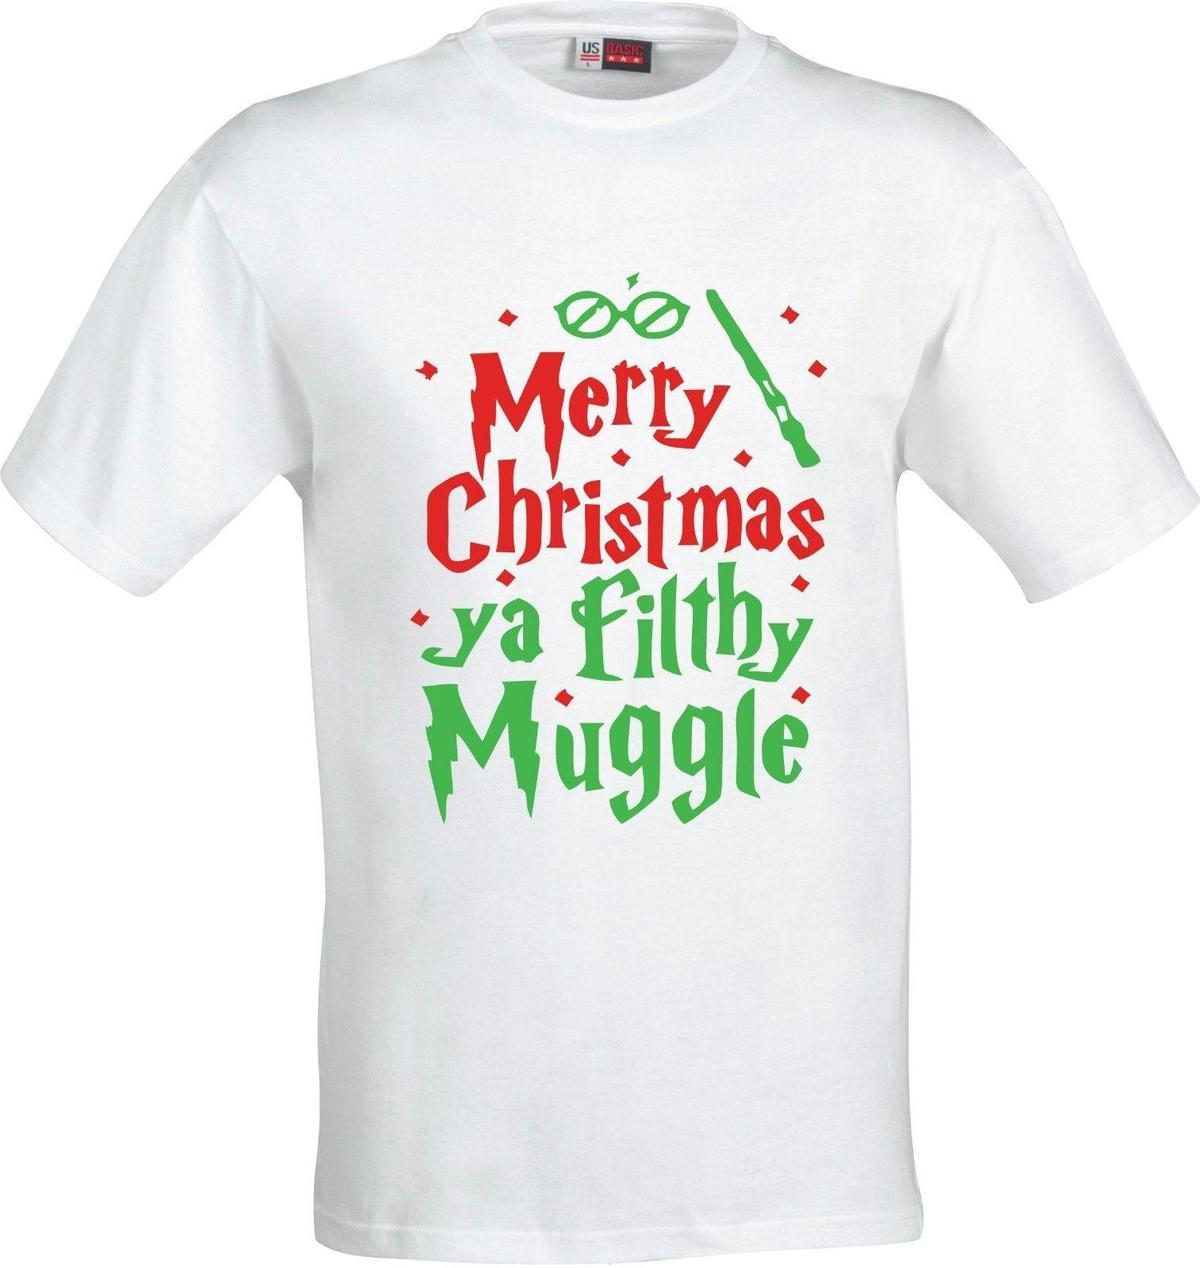 Harry Potter Christmas Shirt.Merry Christmas You Filthy Muggle Harry Potter Full Color Sublimation T Shirt Tee Shirt Deals Online Shopping Tee Shirts From Yubin8 14 66